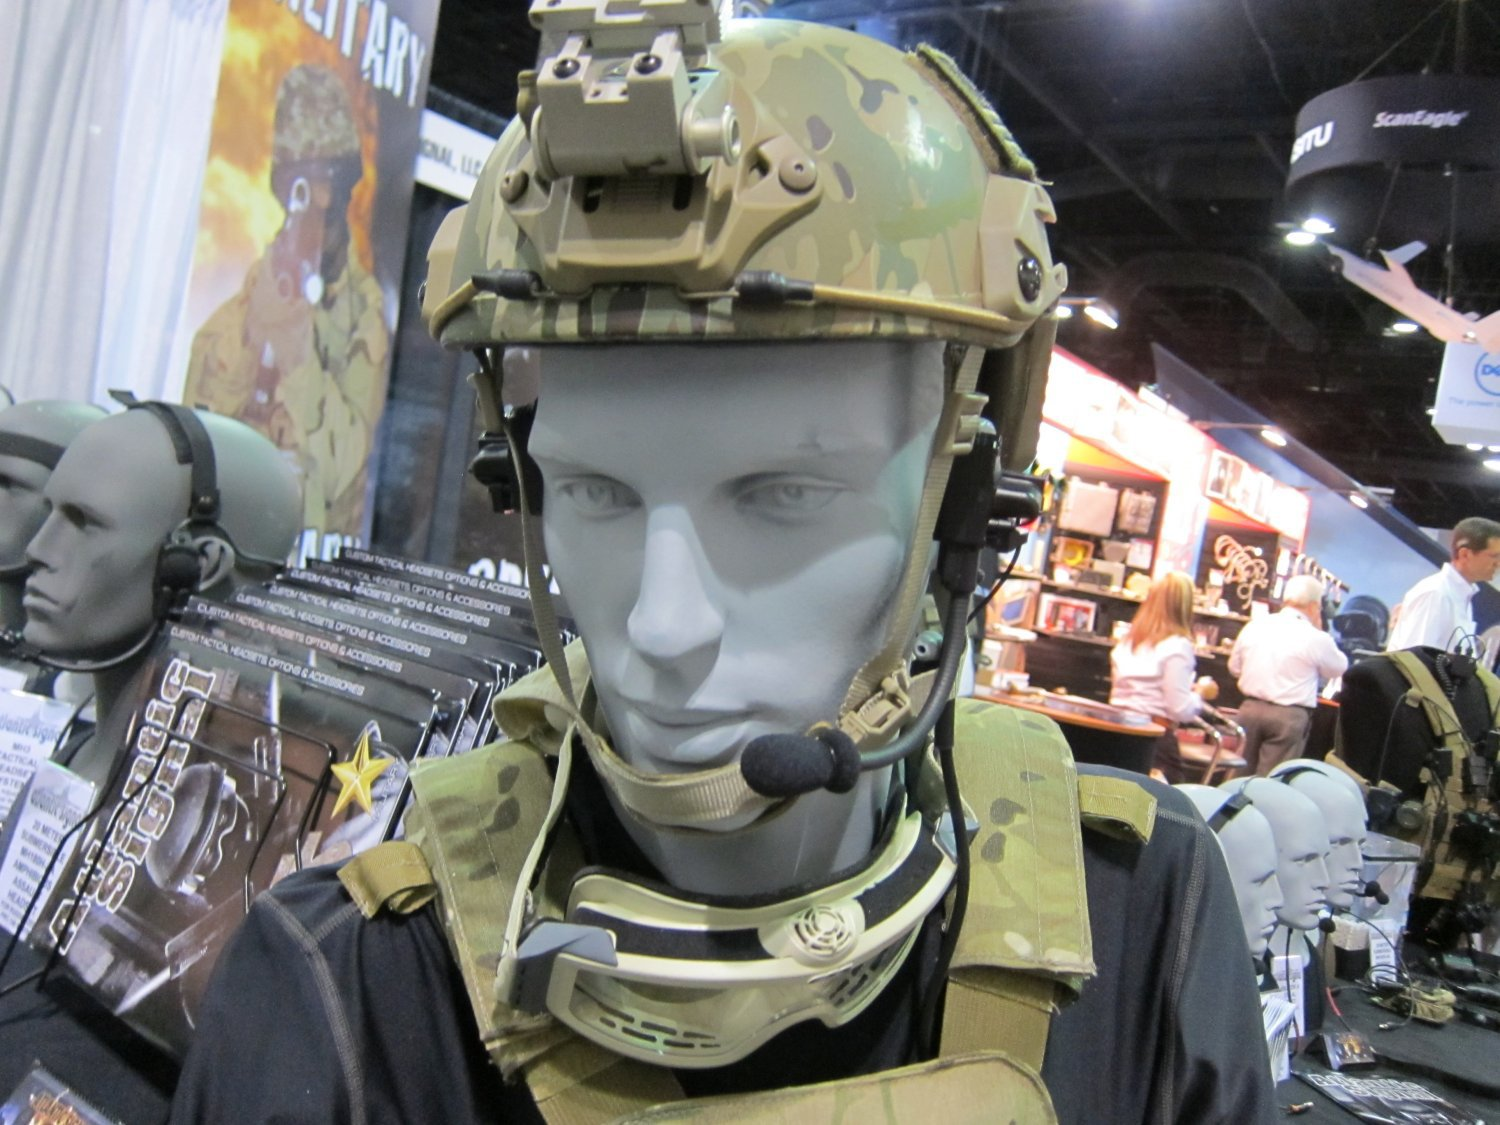 <!--:en-->Atlantic Signal Dominator Waterproof Bone-Conduction/Hearing Pro Tactical Headset Good to Go! U.S. Military Special Operations Tactical Comms Headset Goes Prime-Time at SOFIC 2011 (Photos and Video!) <!--:-->